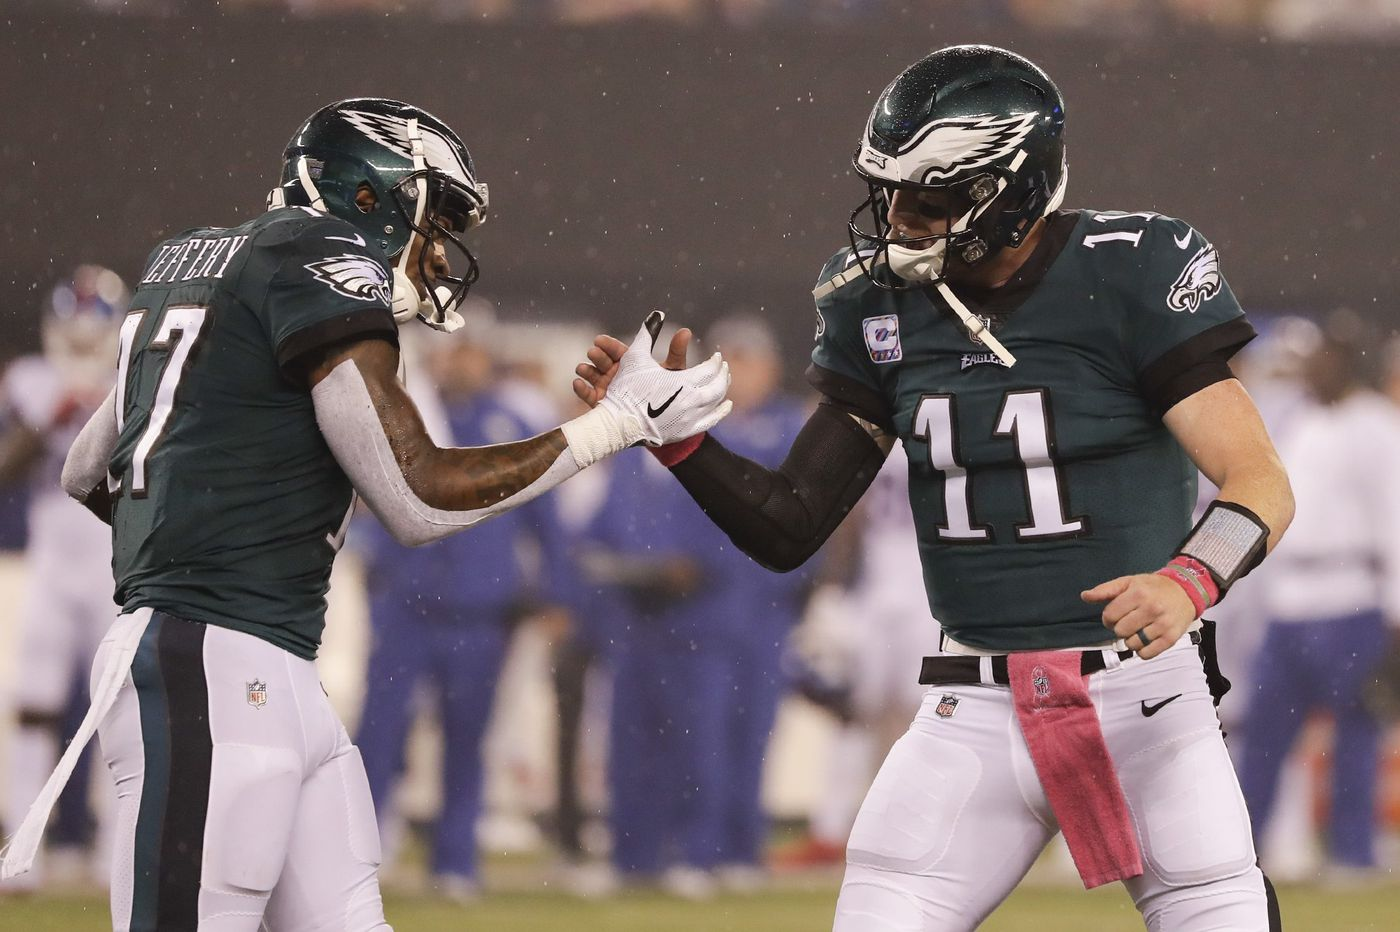 Targeting Alshon Jeffery, punting on the opening drive, and playing time vs. Giants | Early Birds